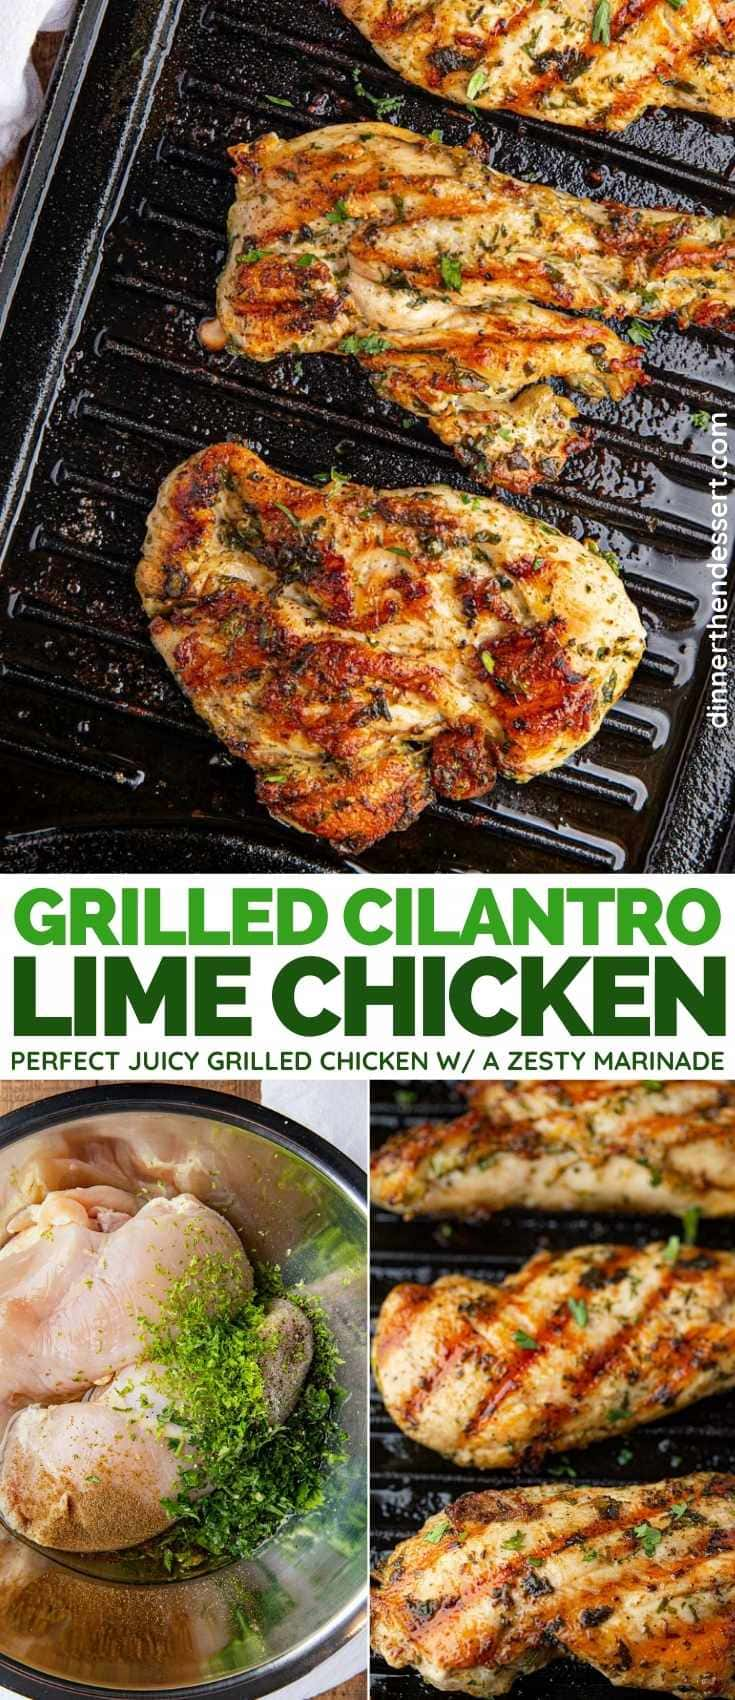 Grilled Cilantro Lime Chicken collage